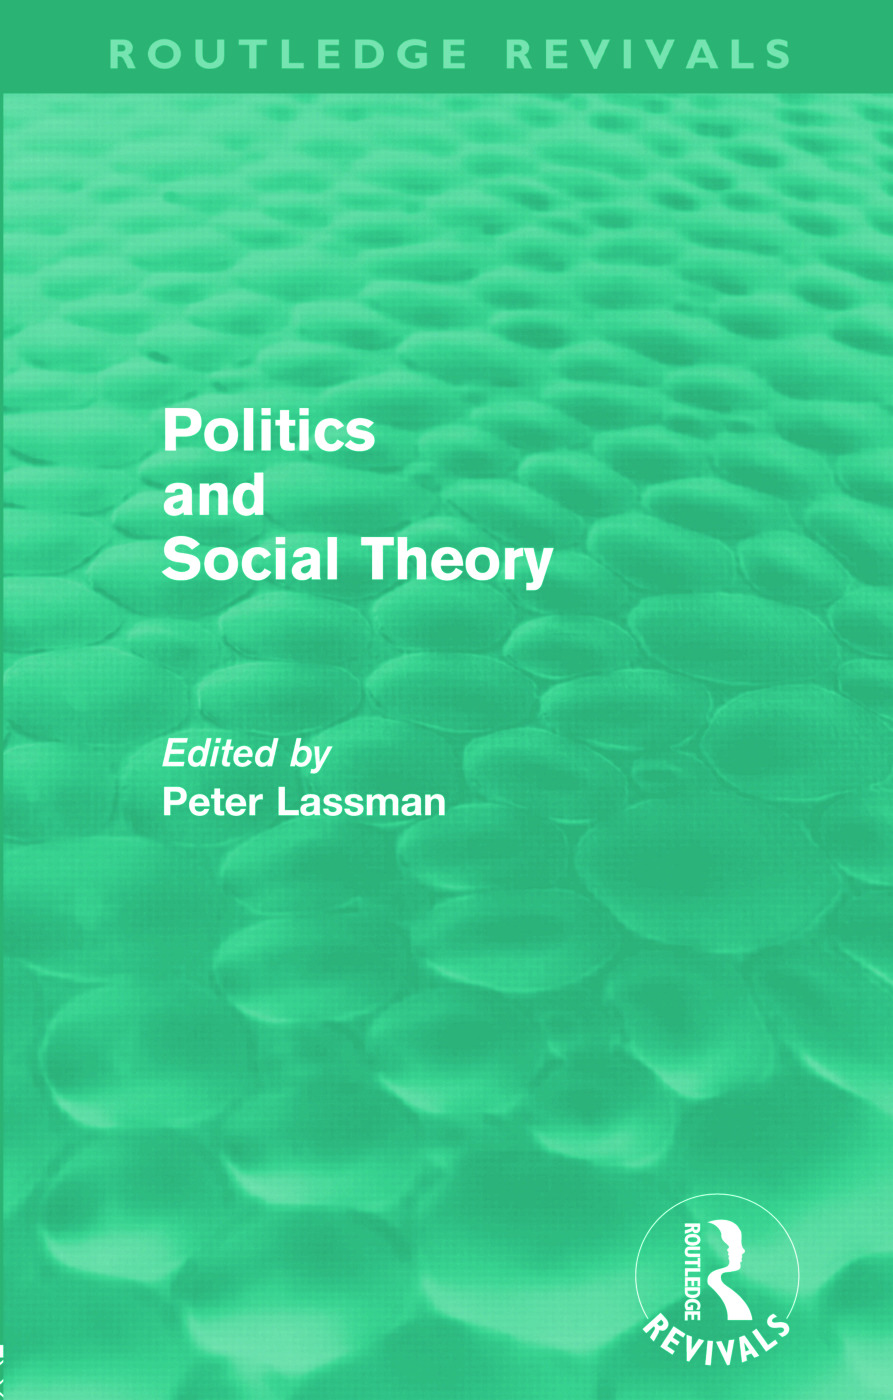 Politics and Social Theory (Routledge Revivals) (Paperback) book cover